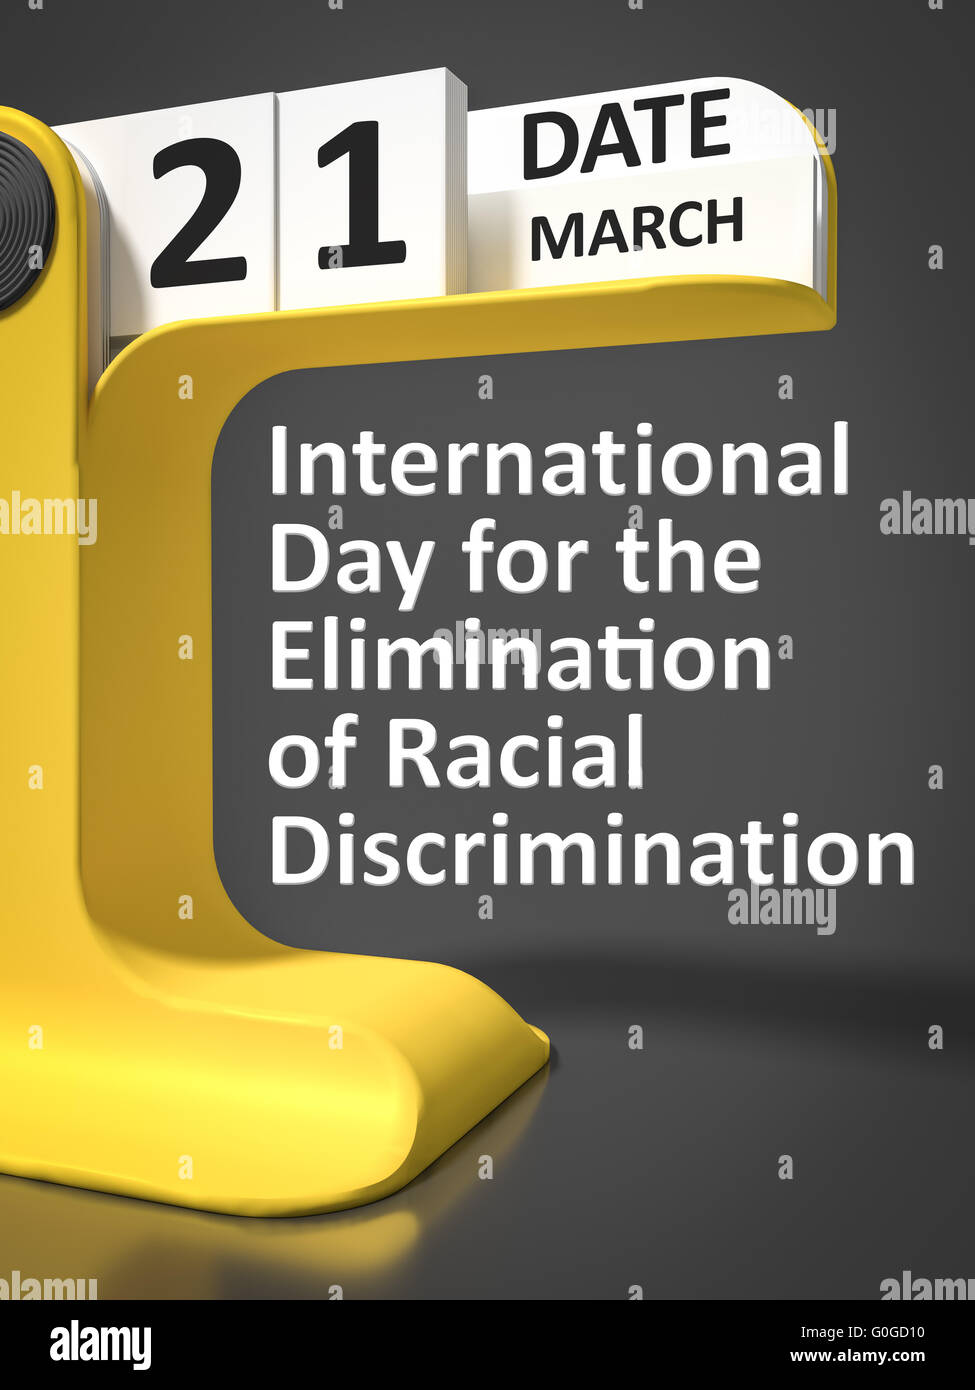 International Day for the Elimination of Racial Discrimination - Stock Image